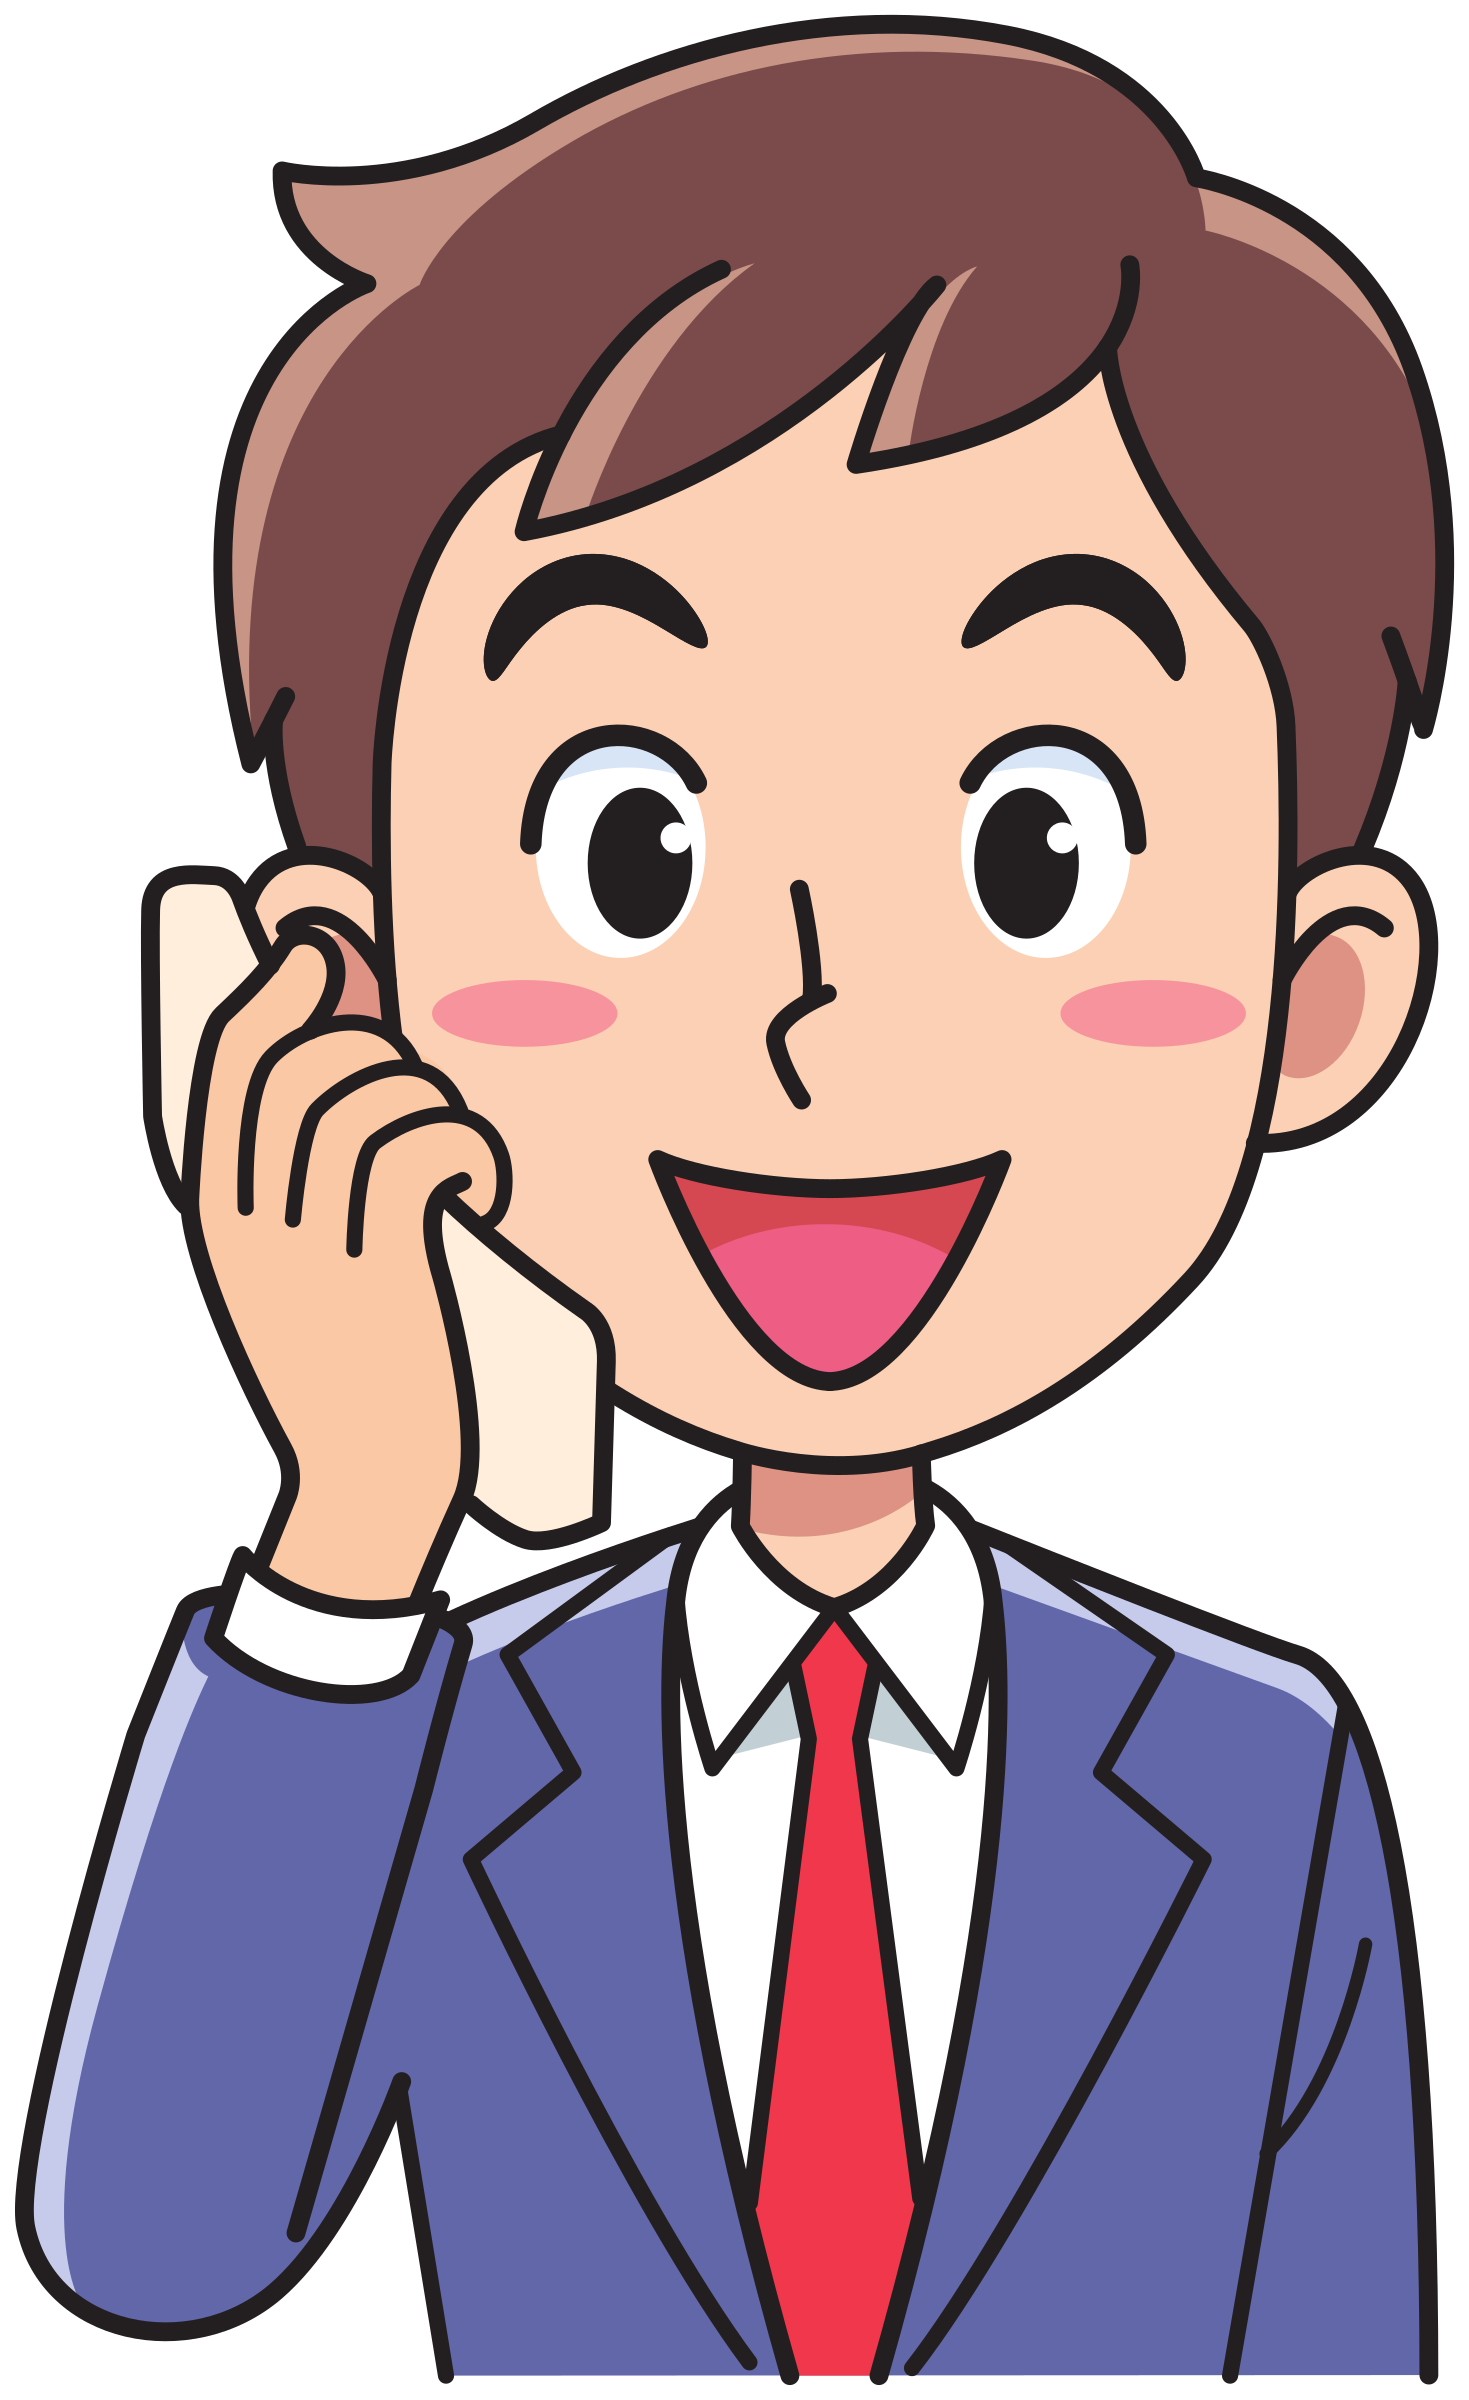 Telephone clipart caller. Person on phone the